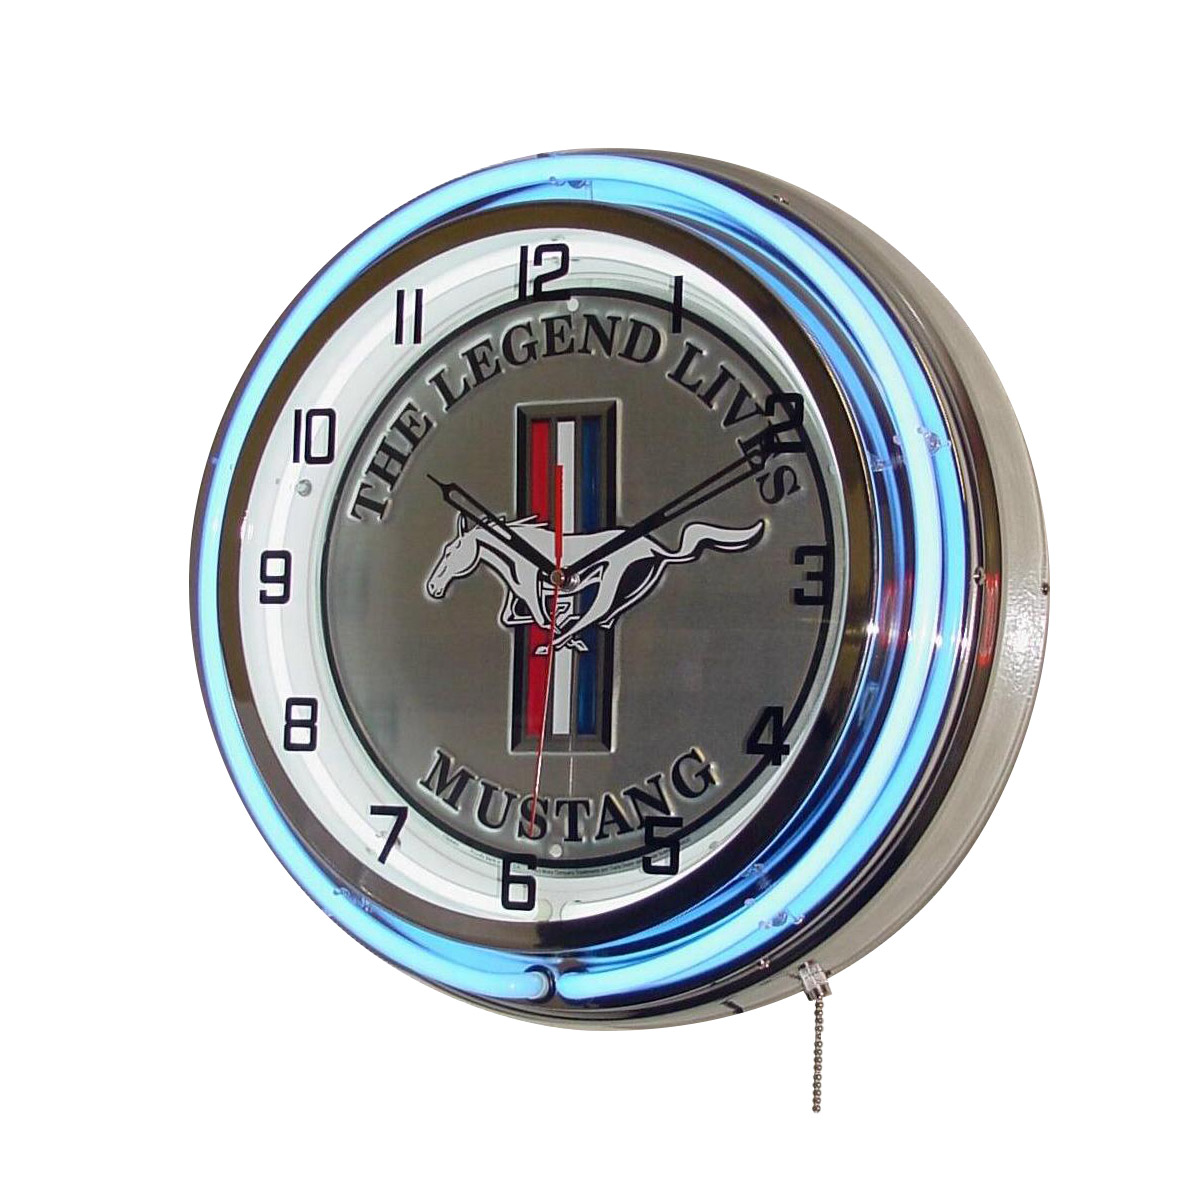 Decorative wall clocks and thermometers retroplanet ford mustang legend lives on double neon clock amipublicfo Images